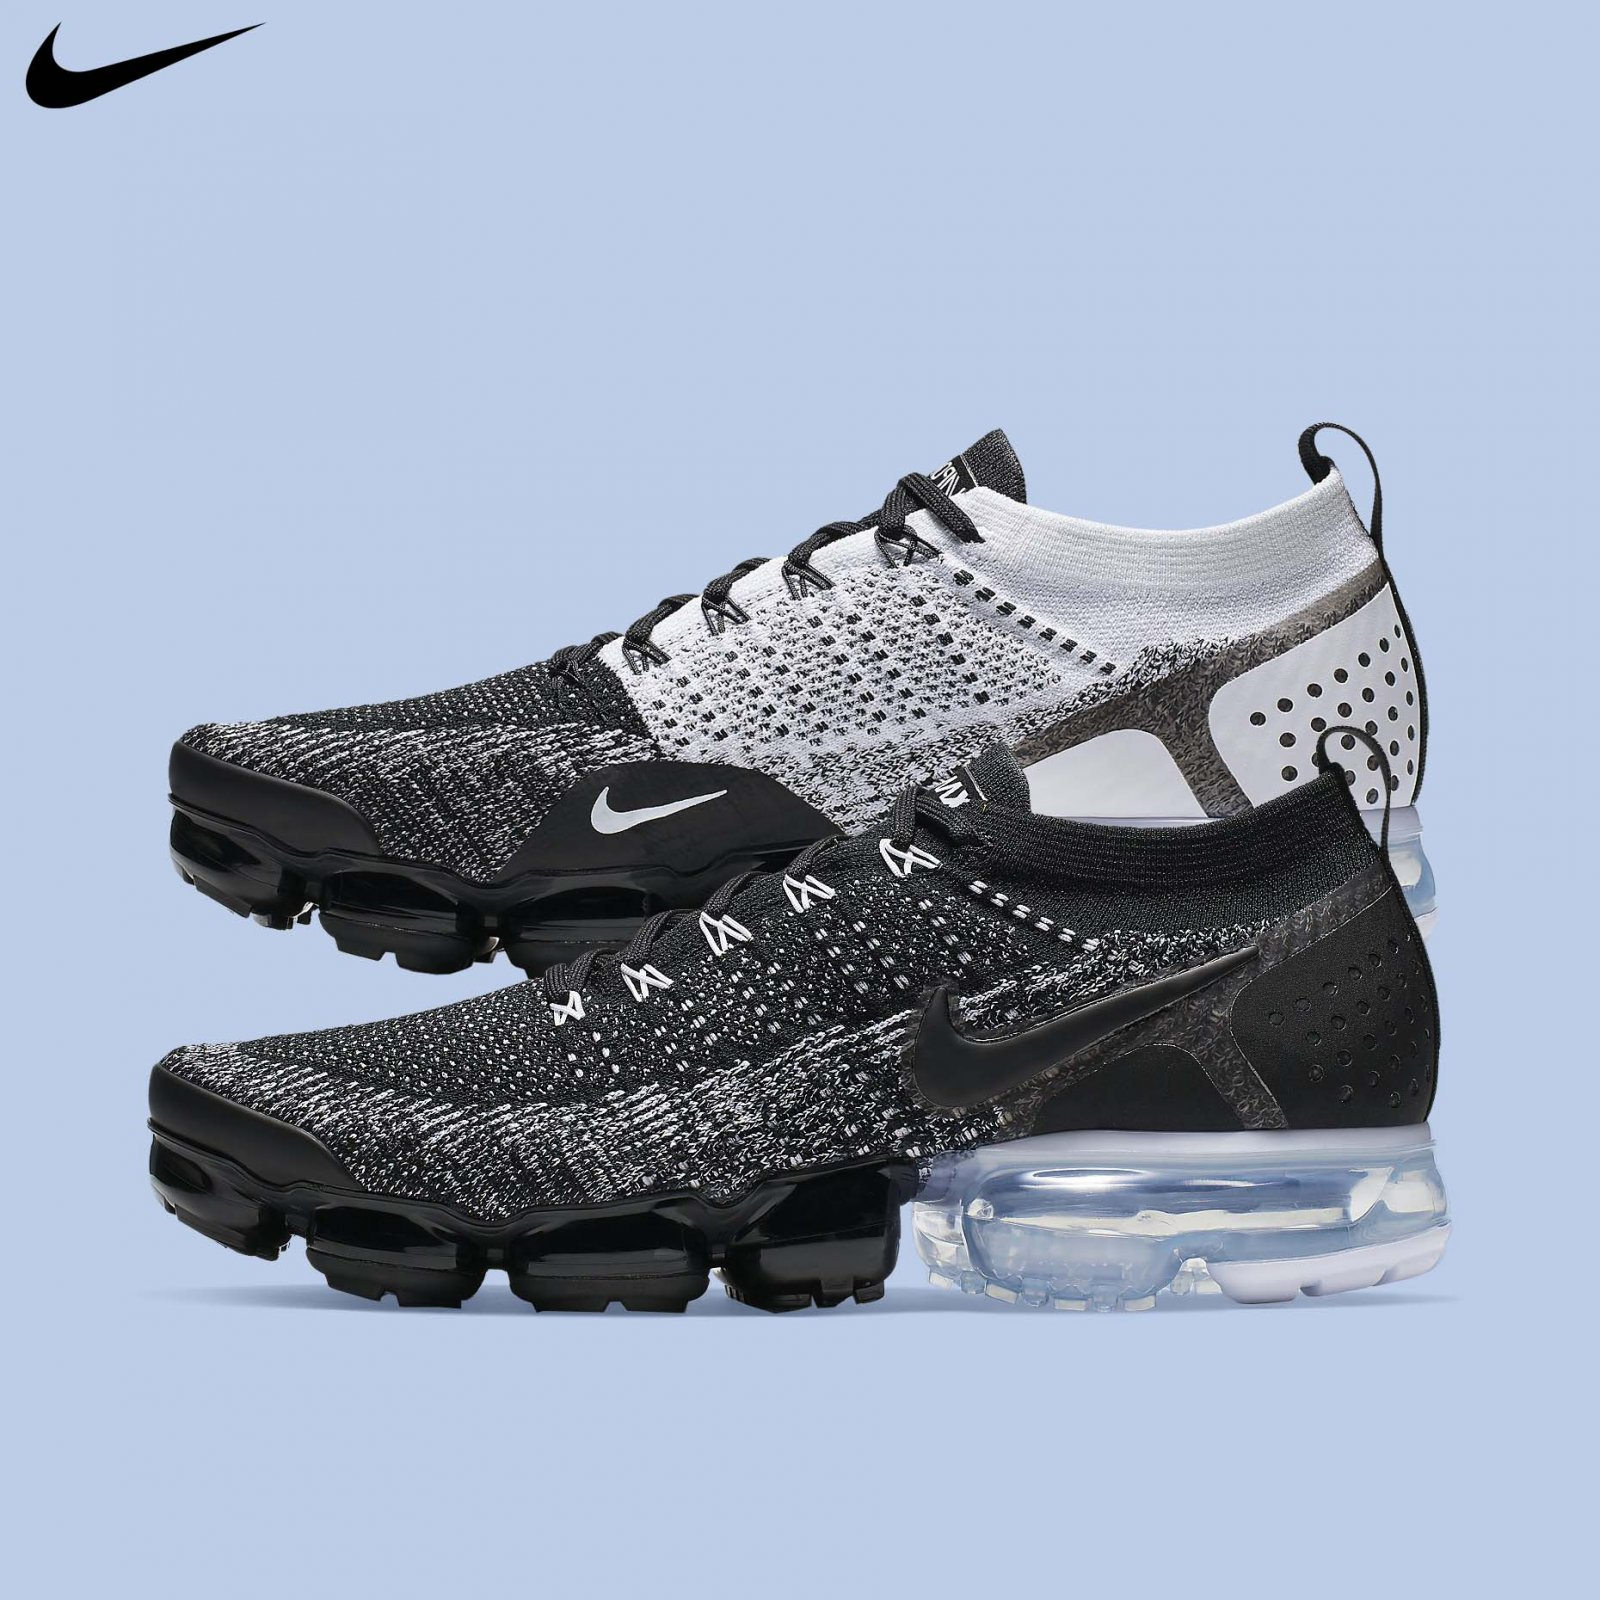 12a7edd9a4 Details about Nike Men's Air Vapormax Flyknit 2 Orca Black White Running  Shoes 2019 942842-016